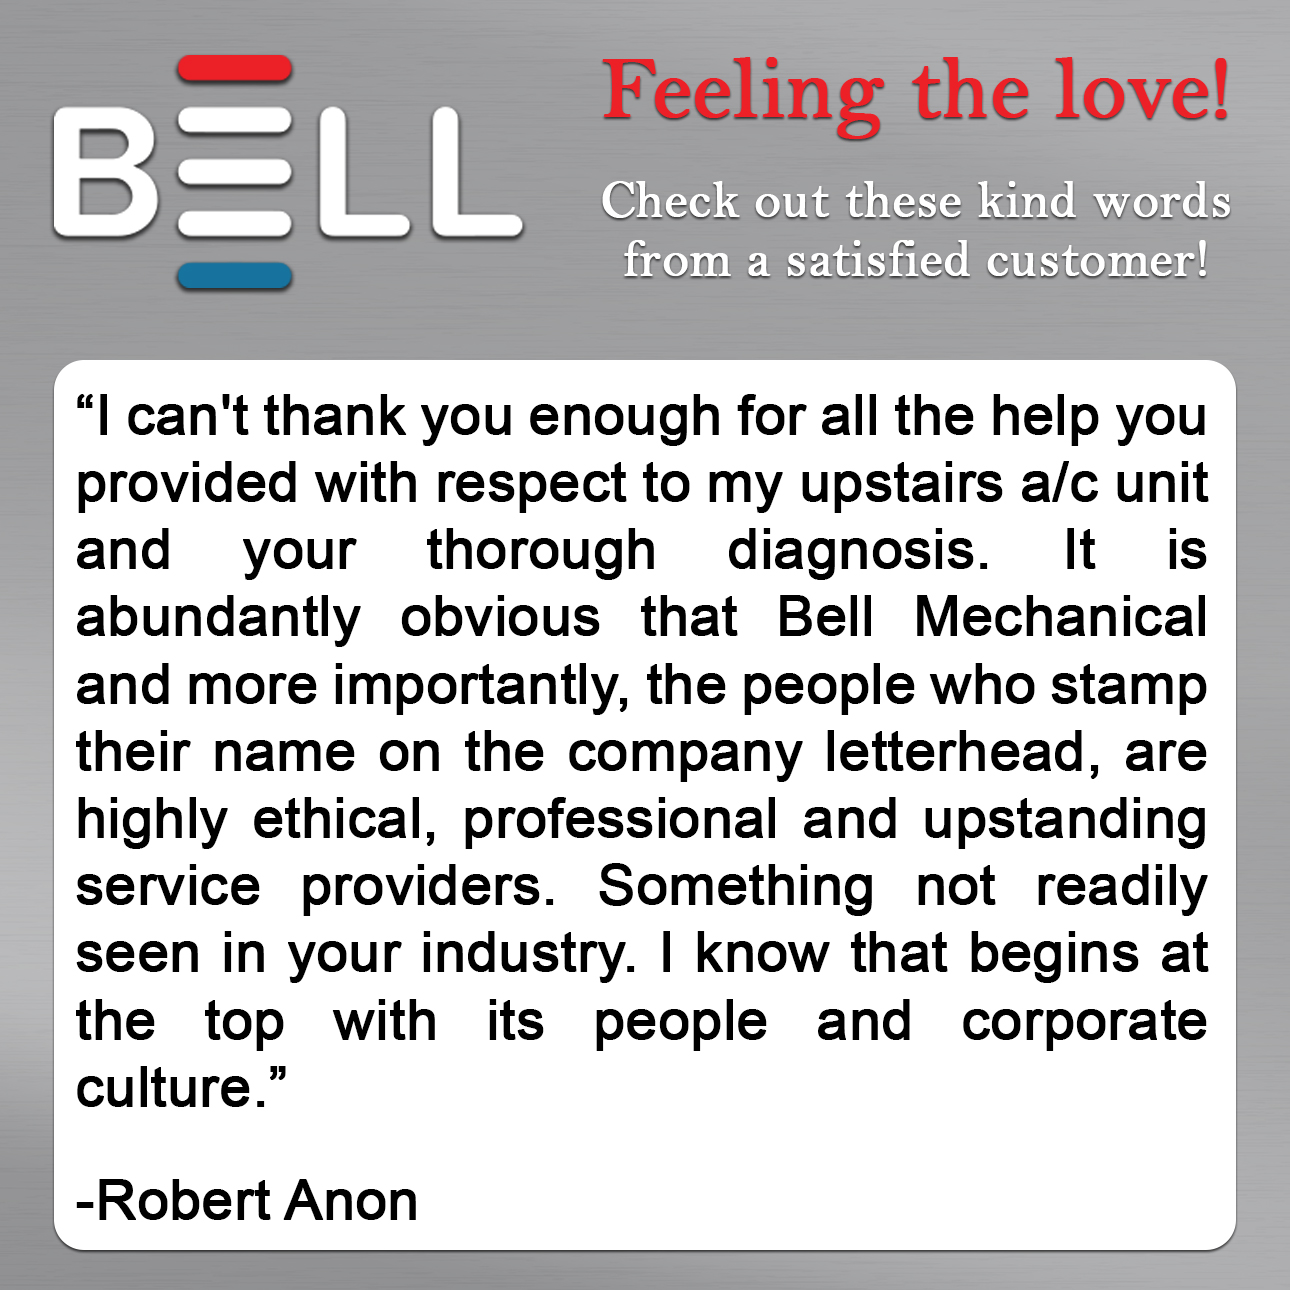 News just thought we should share some amazing genuine feedback from a satisfied customer to scott bell our dallas residential manager and member of the bell malvernweather Gallery